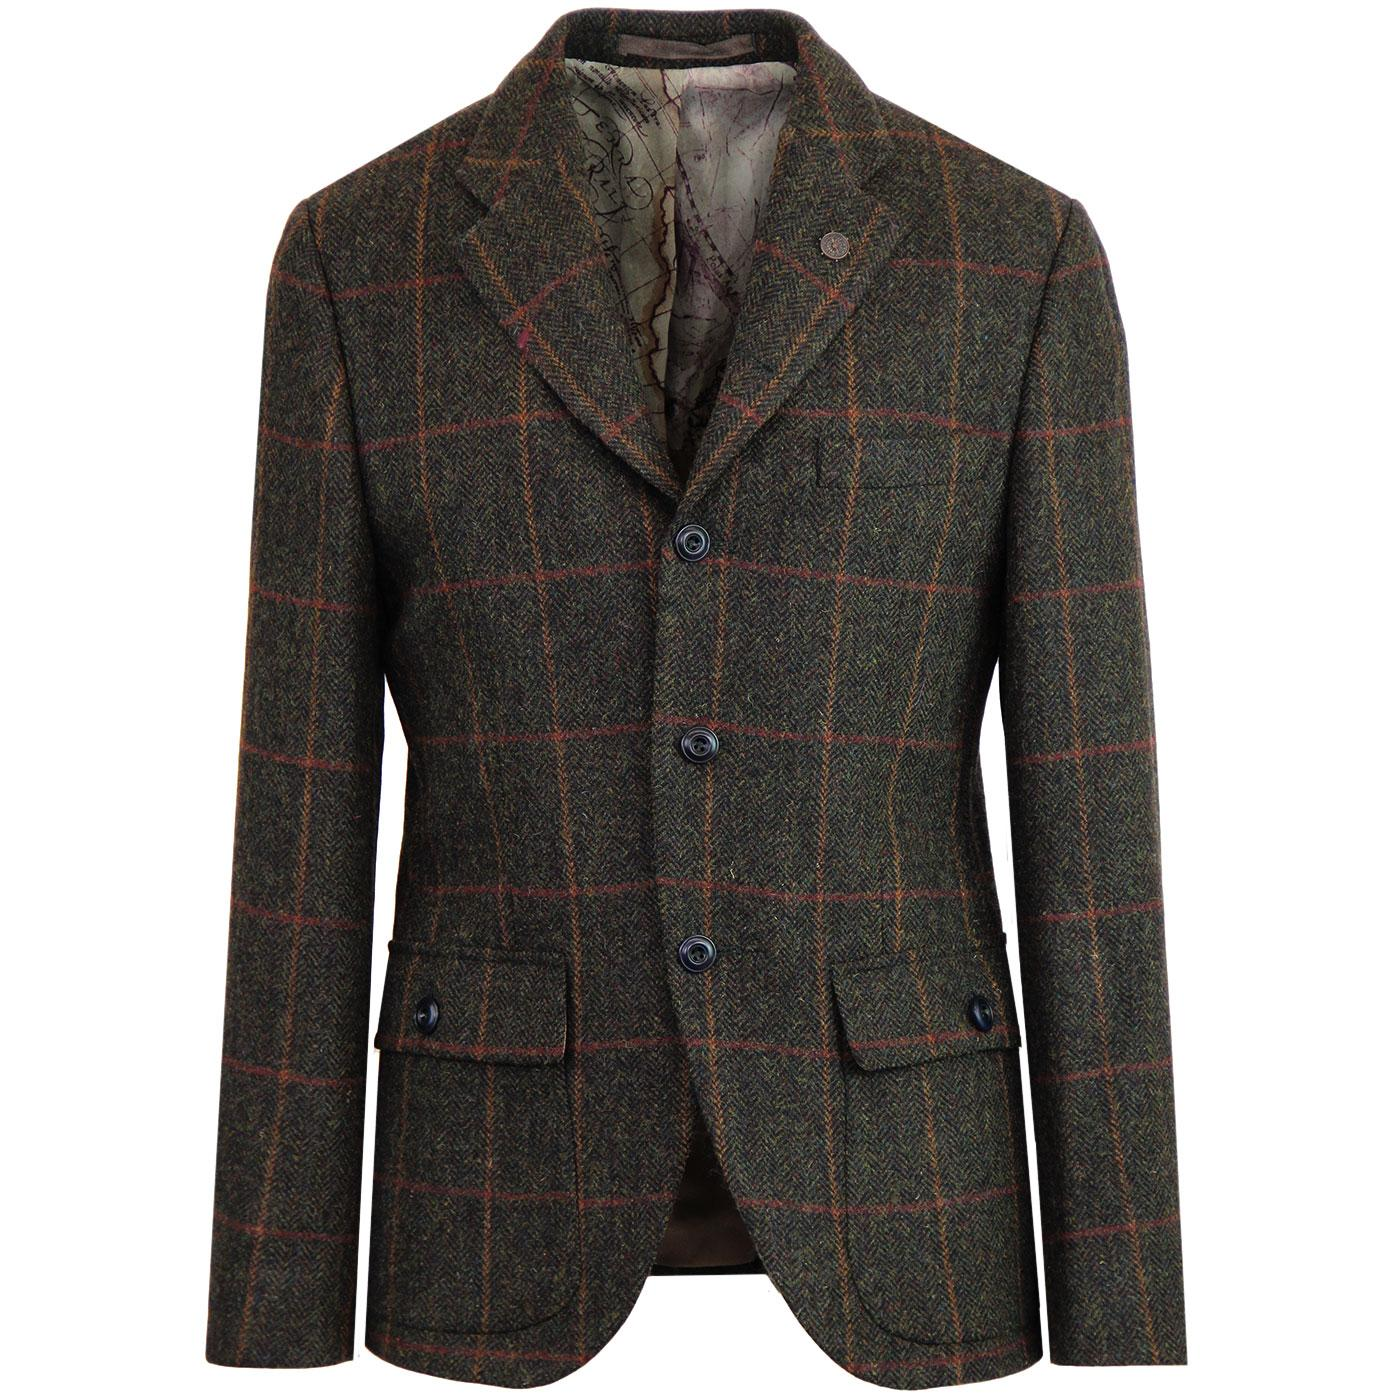 Grouse GIBSON LONDON Herringbone Check Blazer (G)